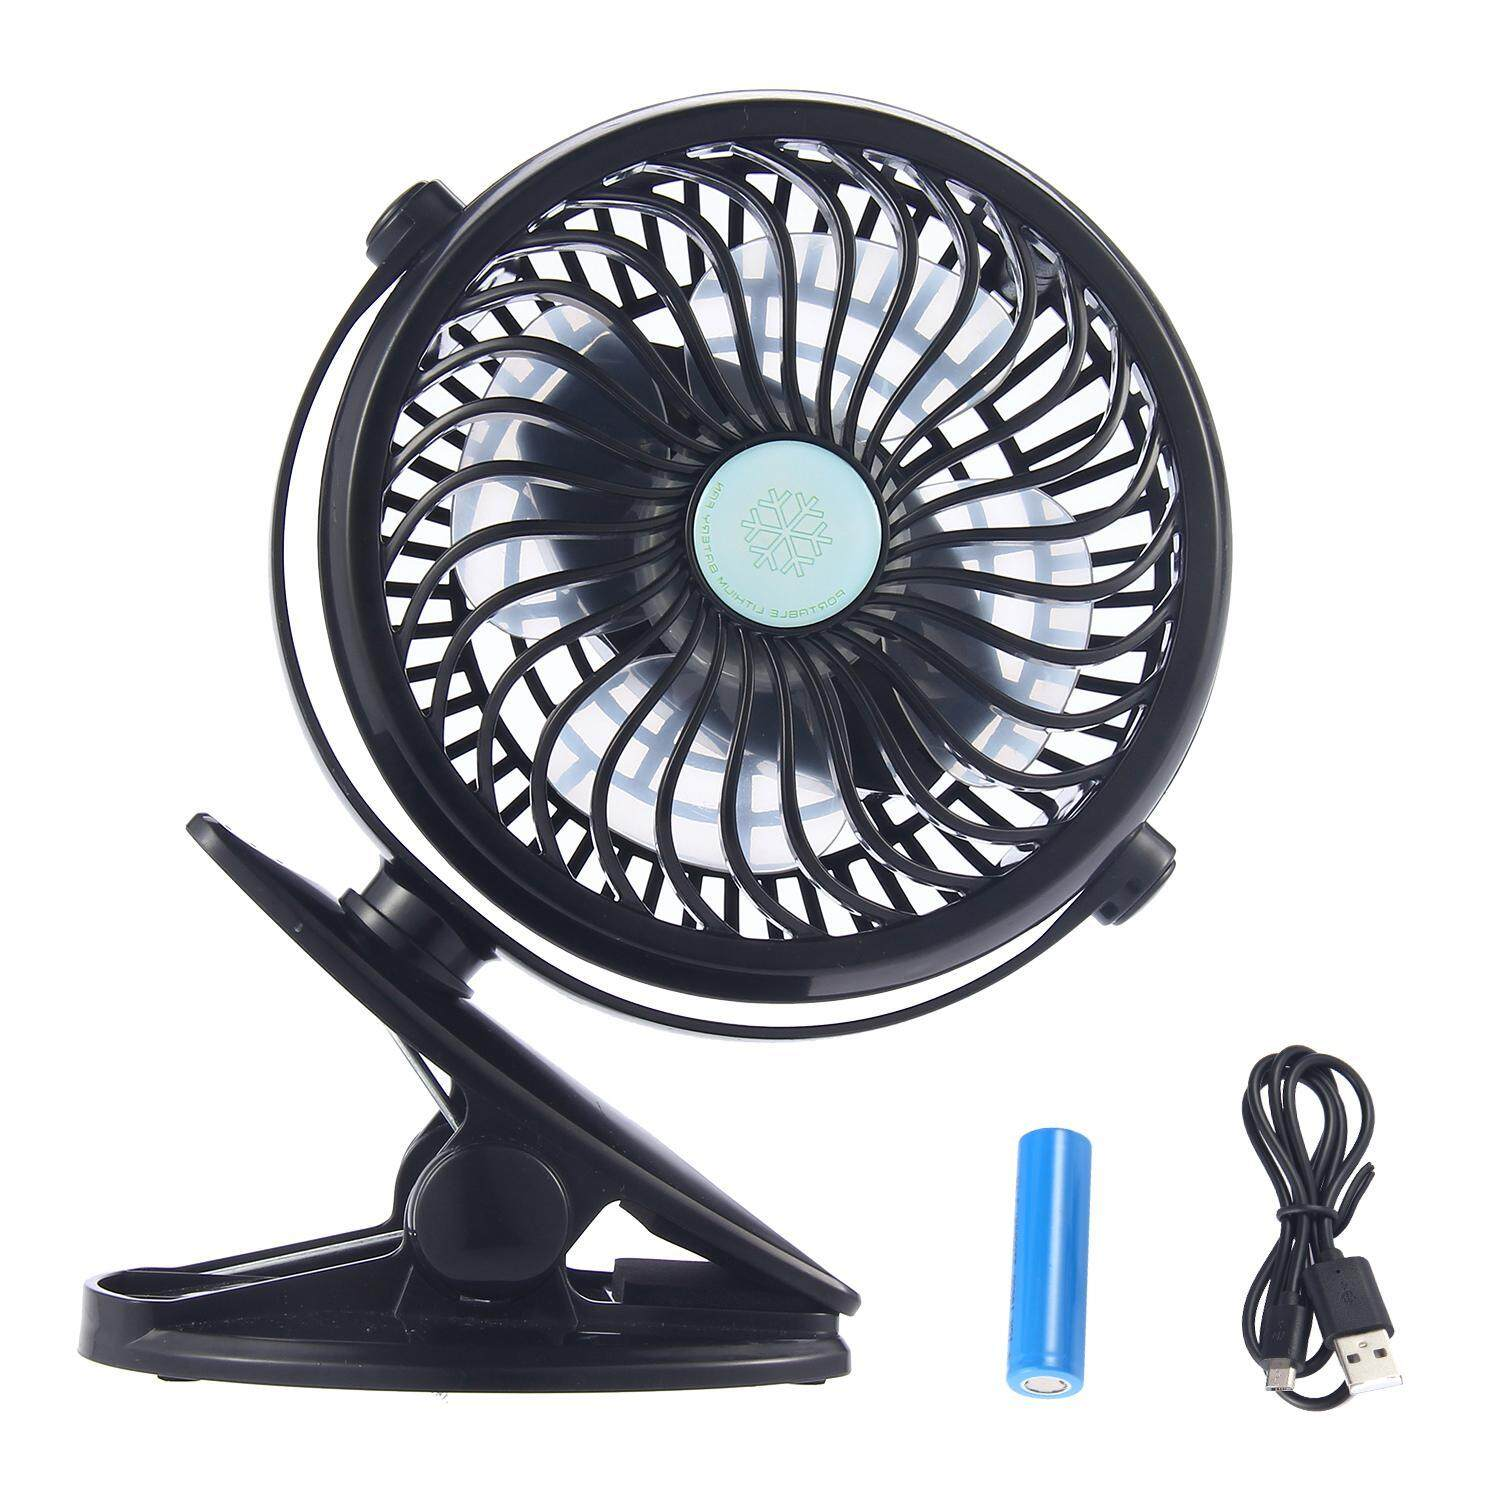 jiaukon Mini Portable USB Fan,360° Rotating Rechargeable Battery Operated Clip on Desk Table Fan Cooler for Home Office Baby Stroller Car Laptop Study Table Gym Camping Tent Dorm Rooms(Black) - intl